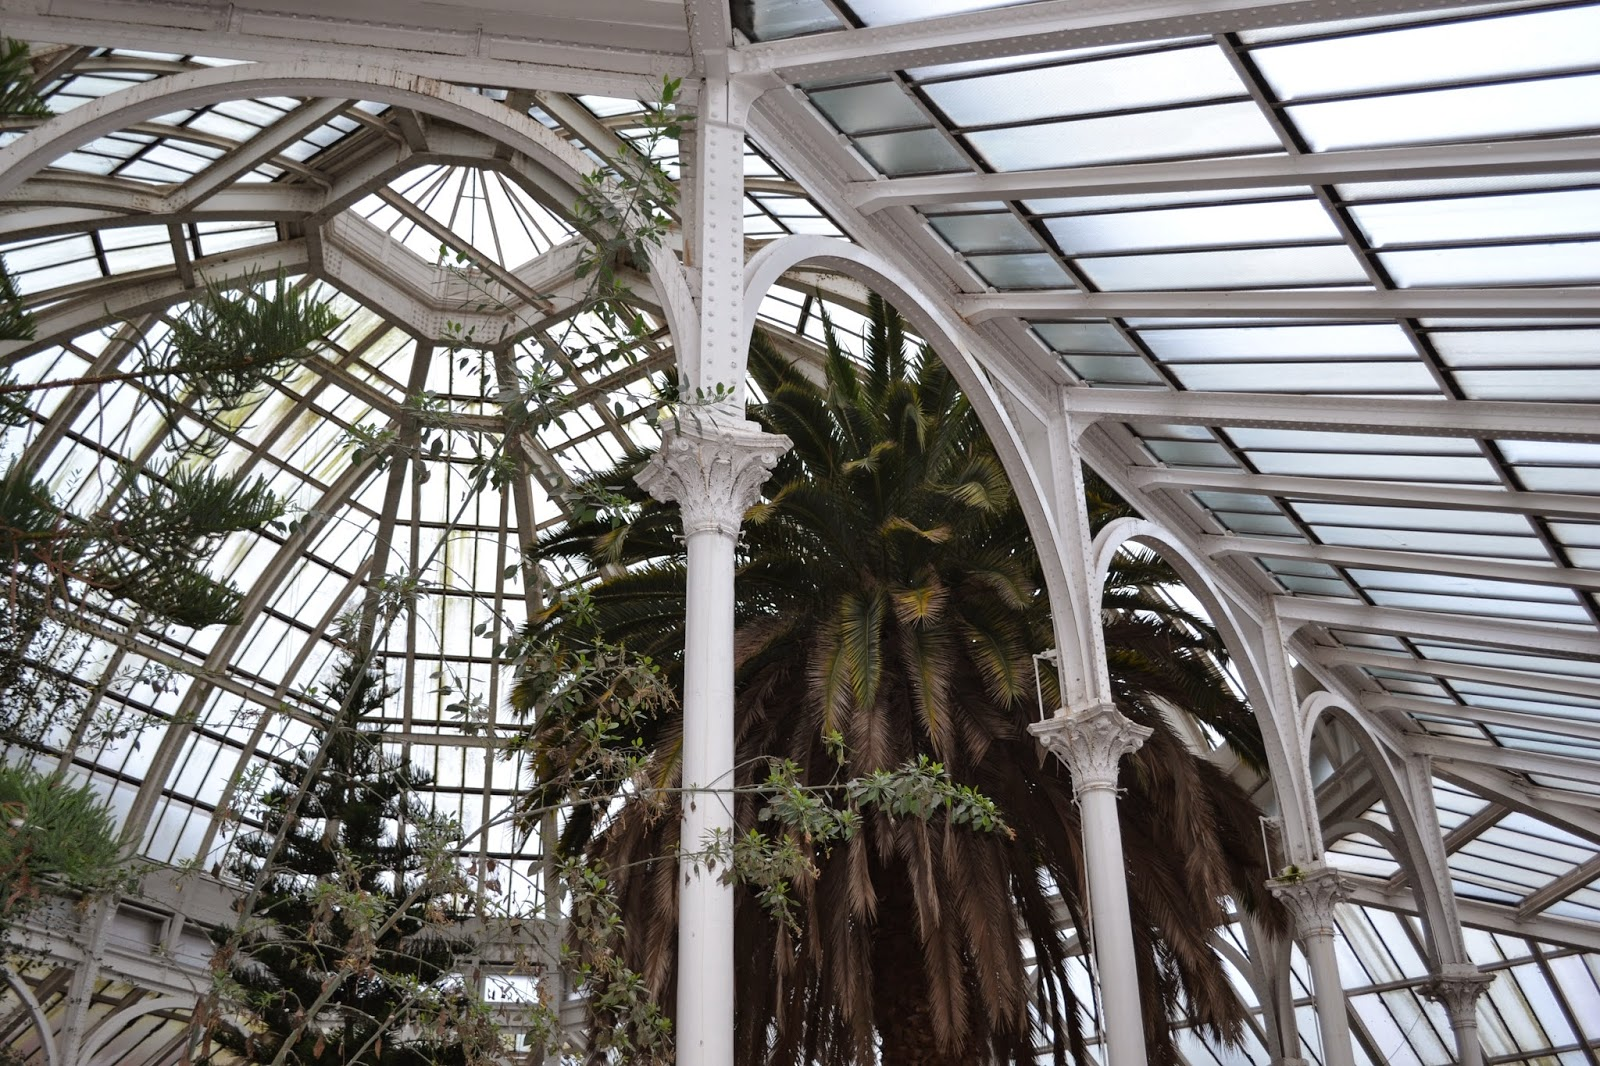 Victorian glasshouse roof with palm trees